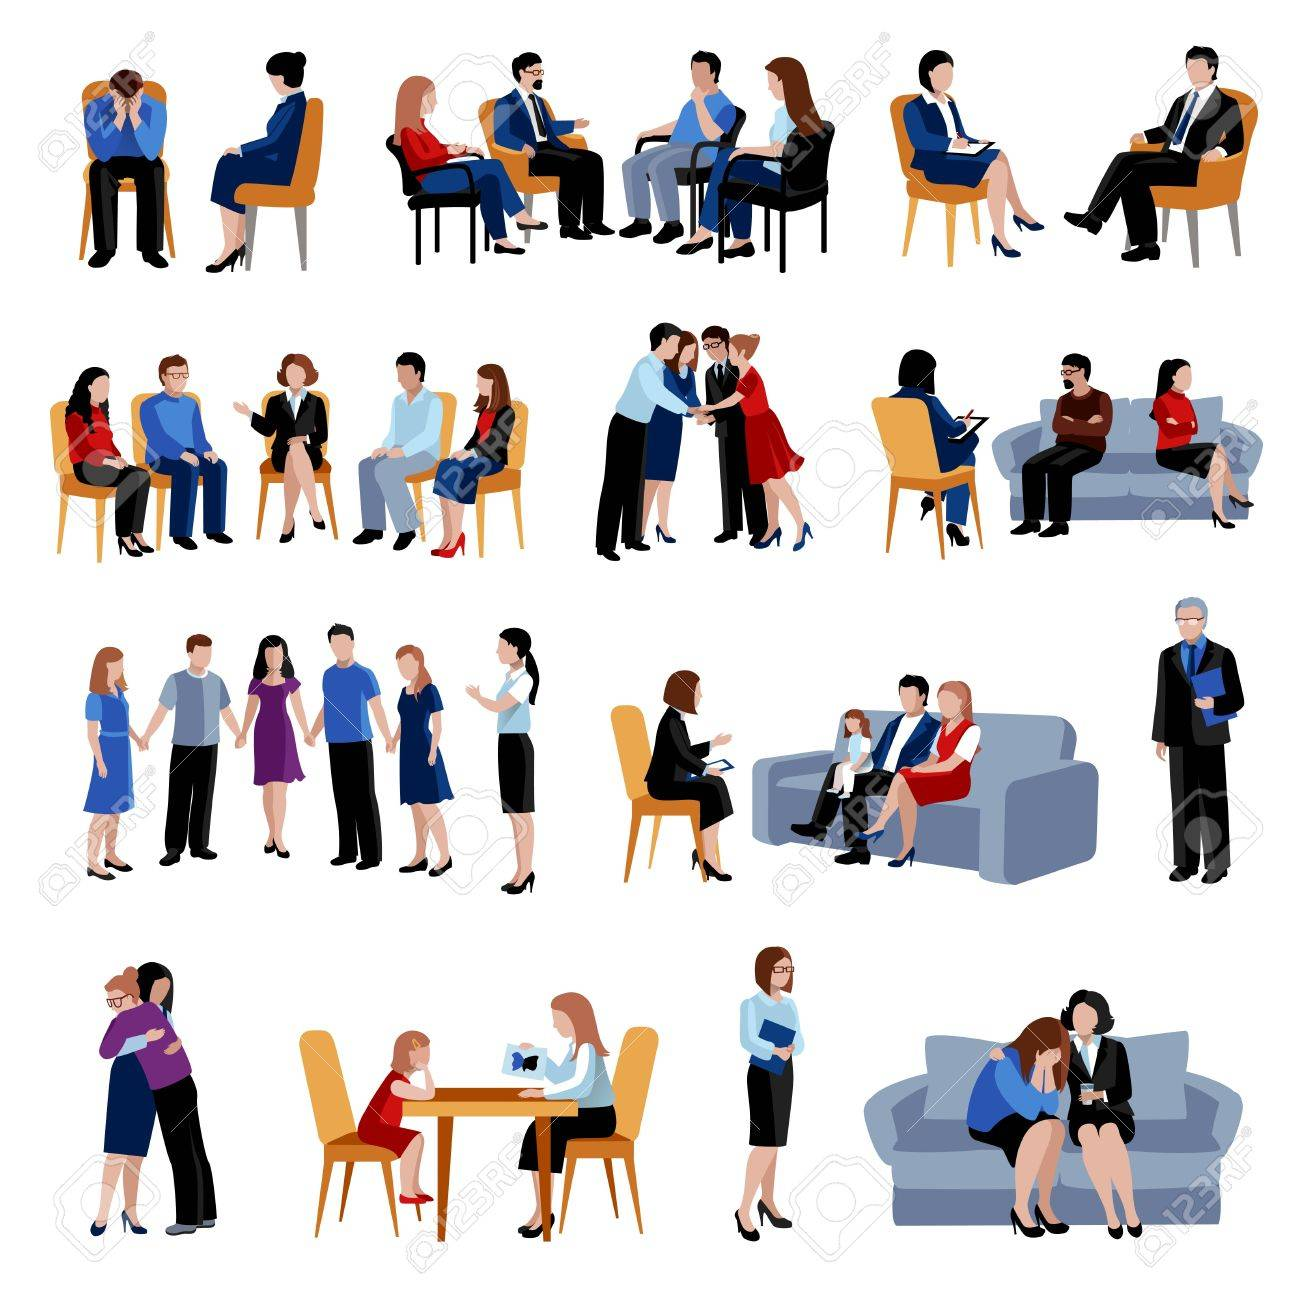 Family and relationship problems counseling and therapy with support group flat icons collection abstract isolated vector illustration - 49540094